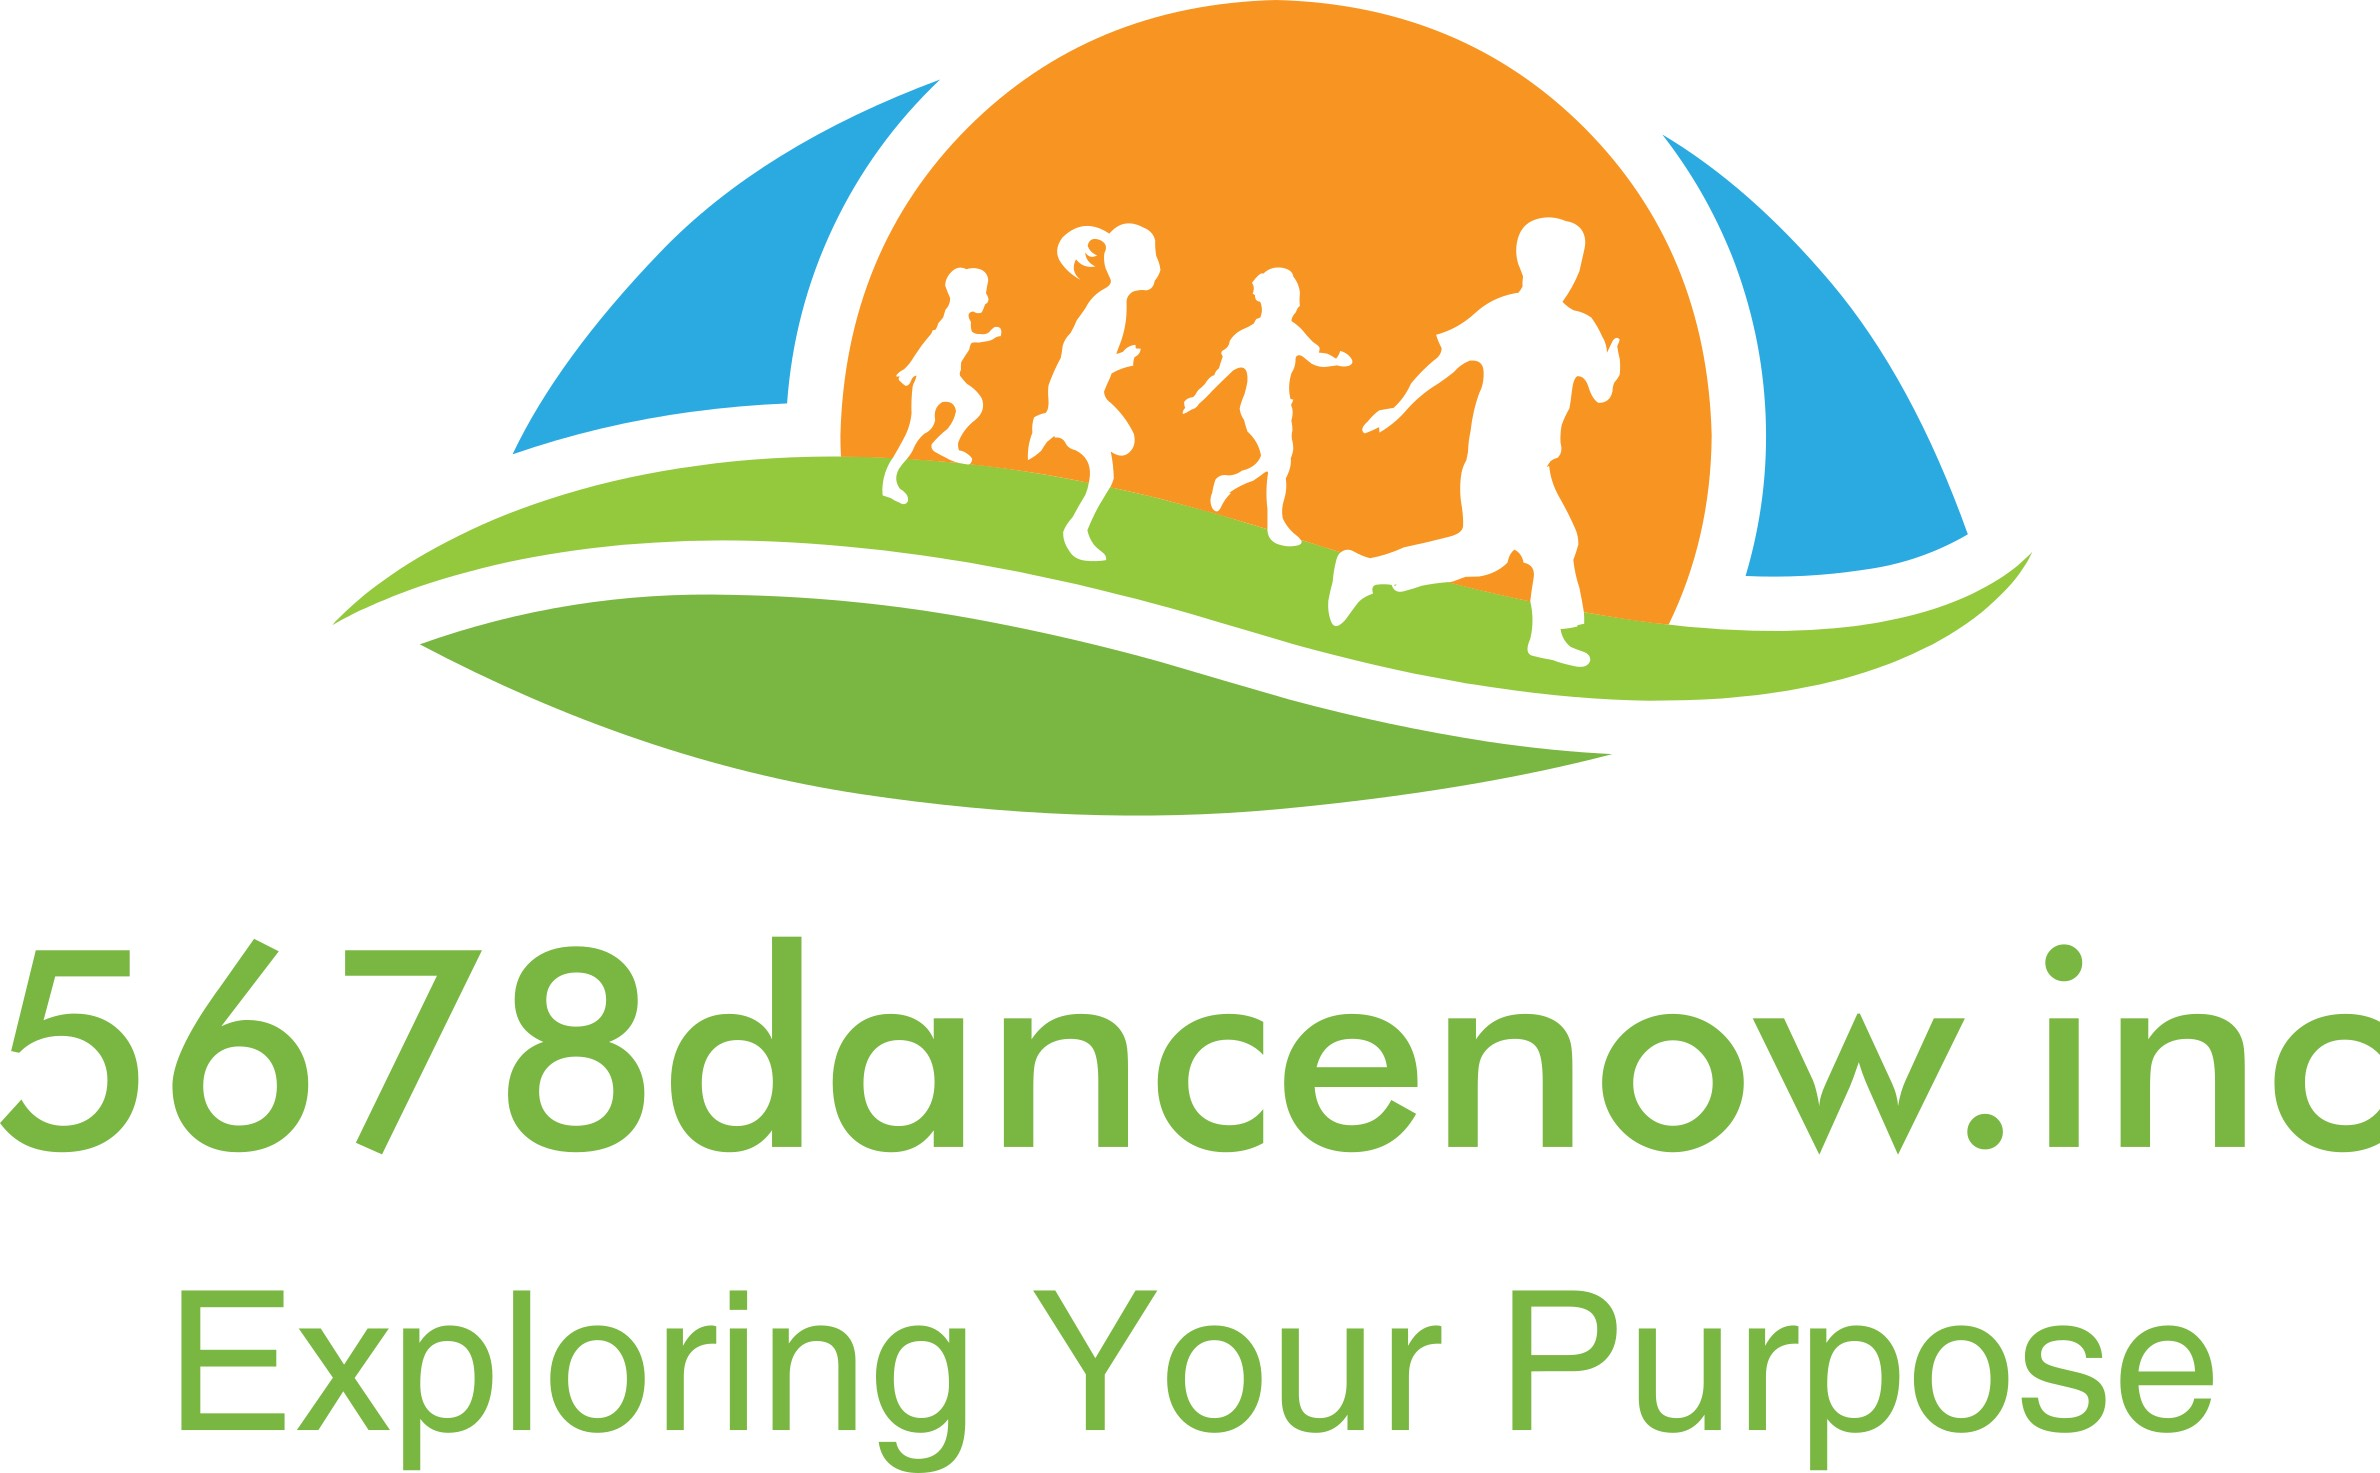 Ayesha Watson and 5678dancenow.inc Are Creating Ripples of Positivity Within Their Community and the World at Large